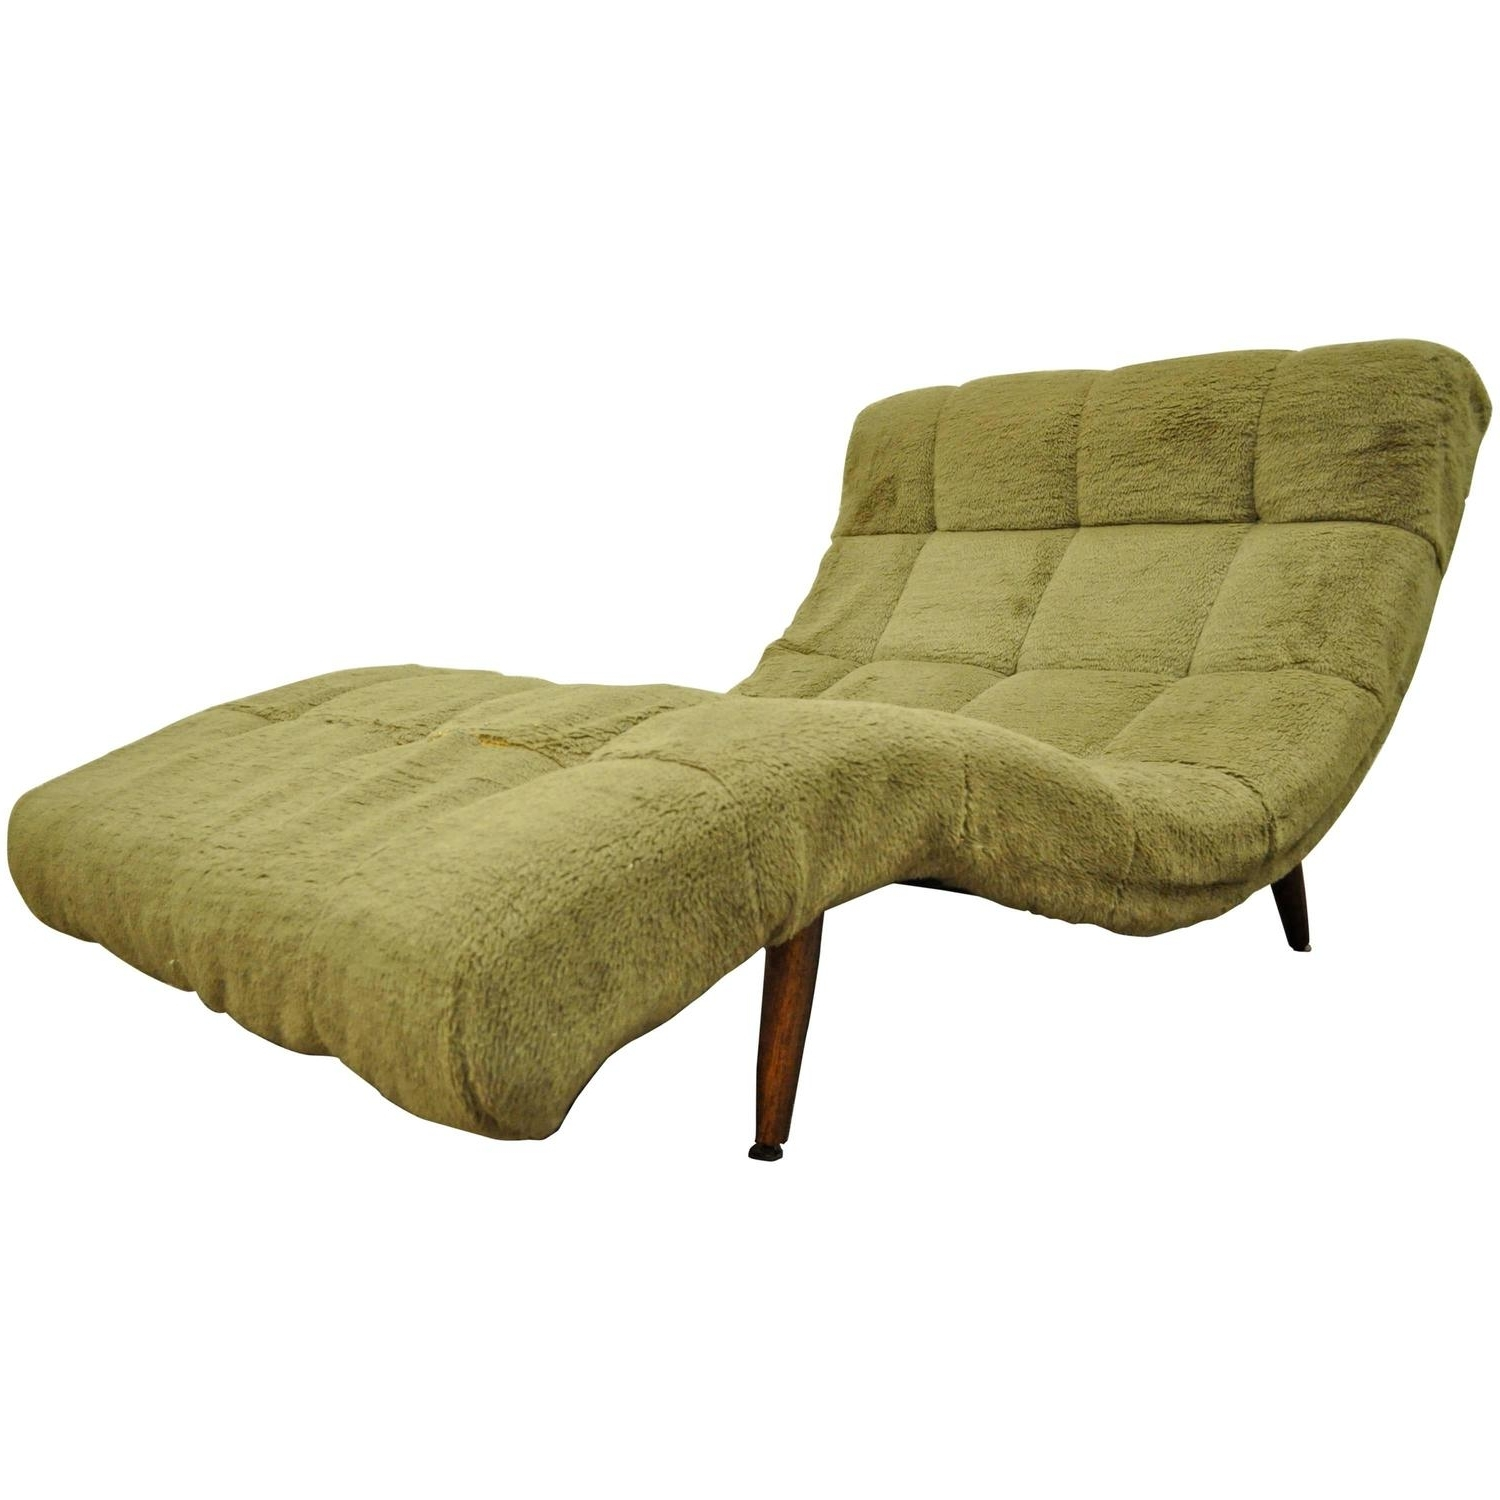 Famous Leopard Chaise Lounges Throughout Mid Century S Curve Lounge Chair In